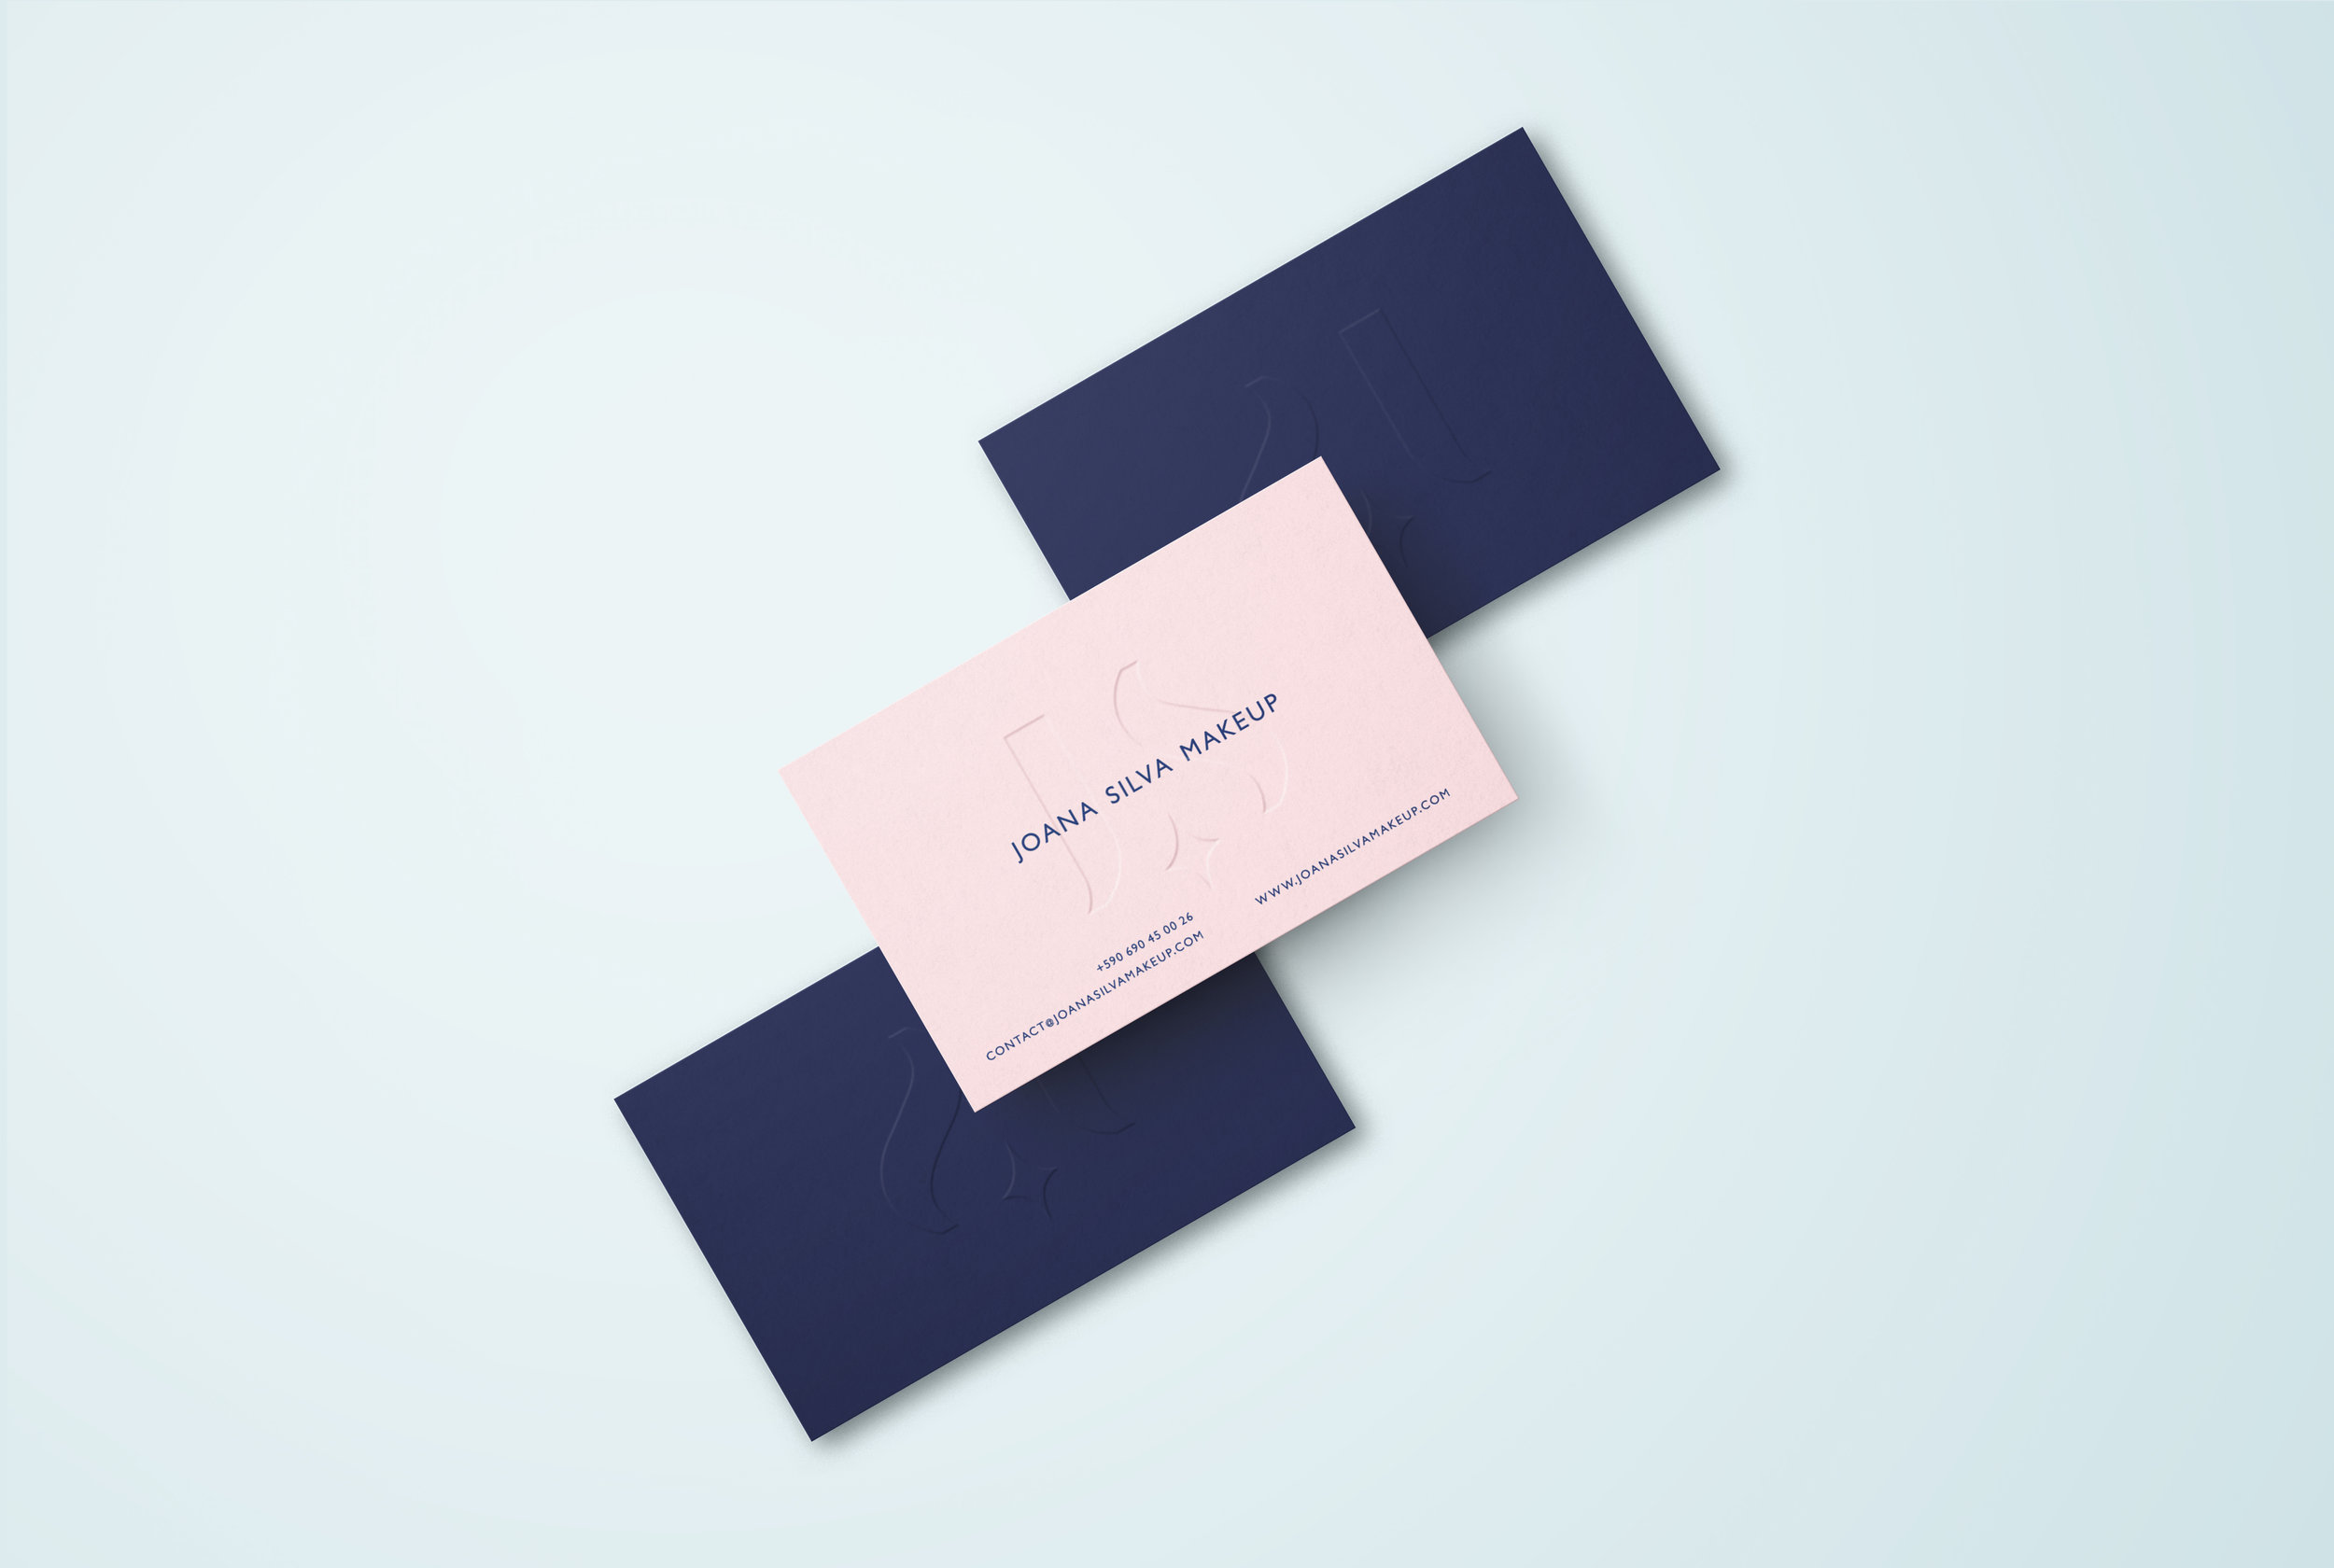 Joana+Silva+Makeup+business+cards+by+Gen+Design+Studio.jpg